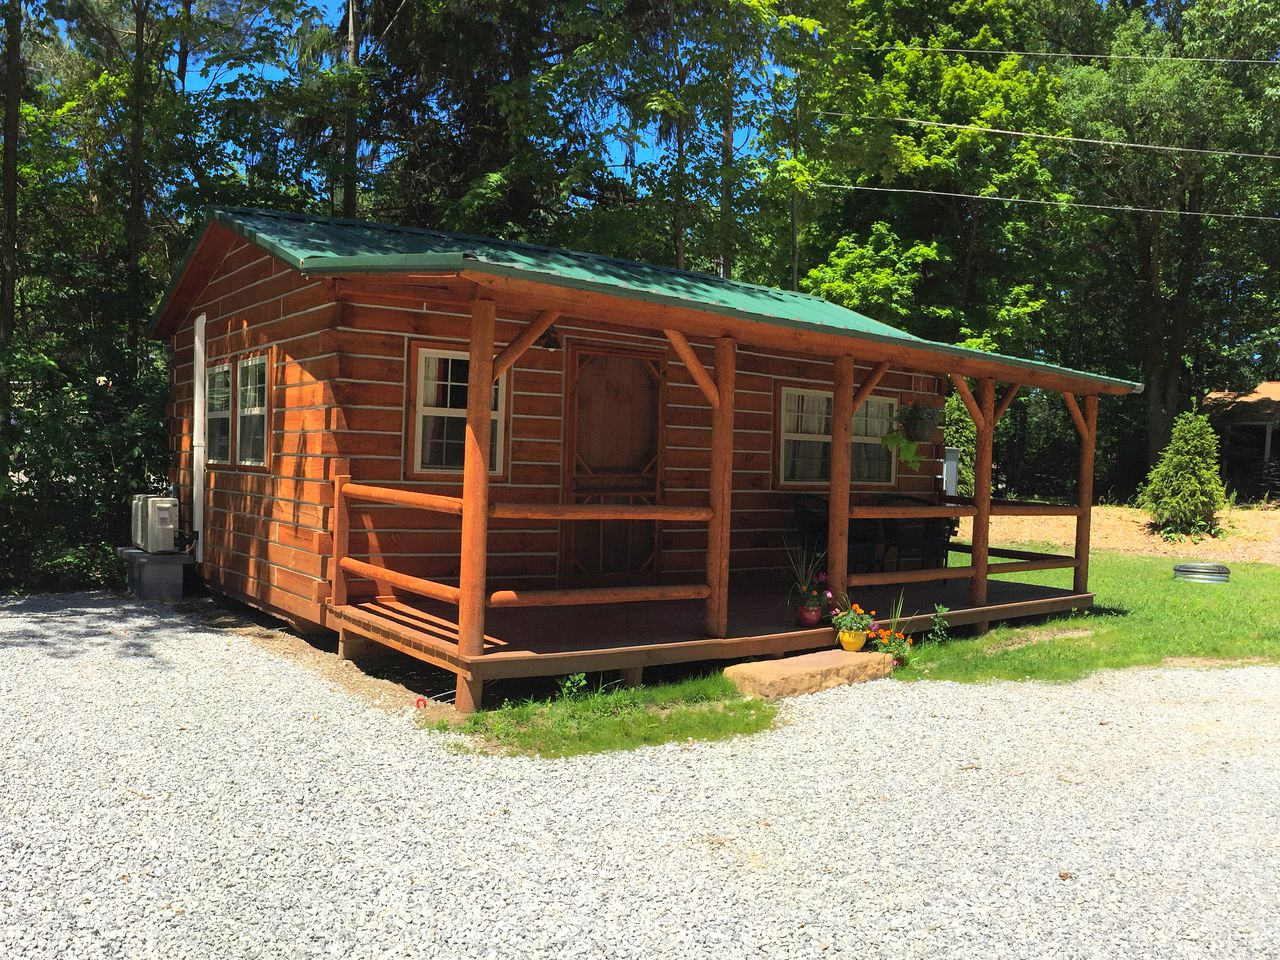 Pet-friendly cabin rental surrounded by trees in Harbor Country, Michigan.